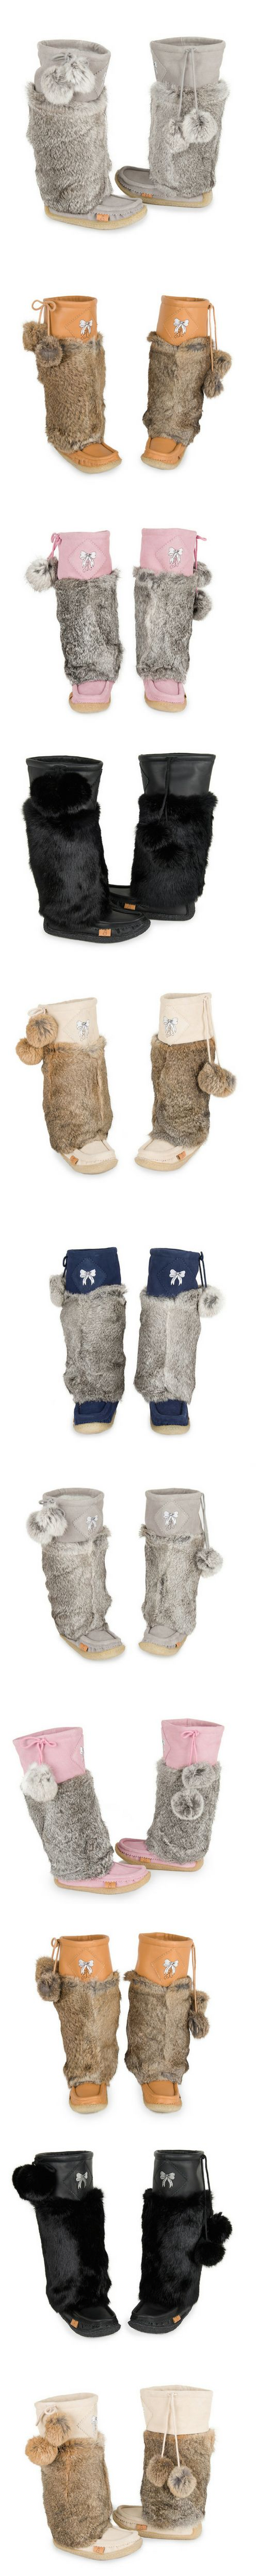 Lukluks the most comfortable womens boots made of rabbit fur and leather perfect for fall/ winter 2016